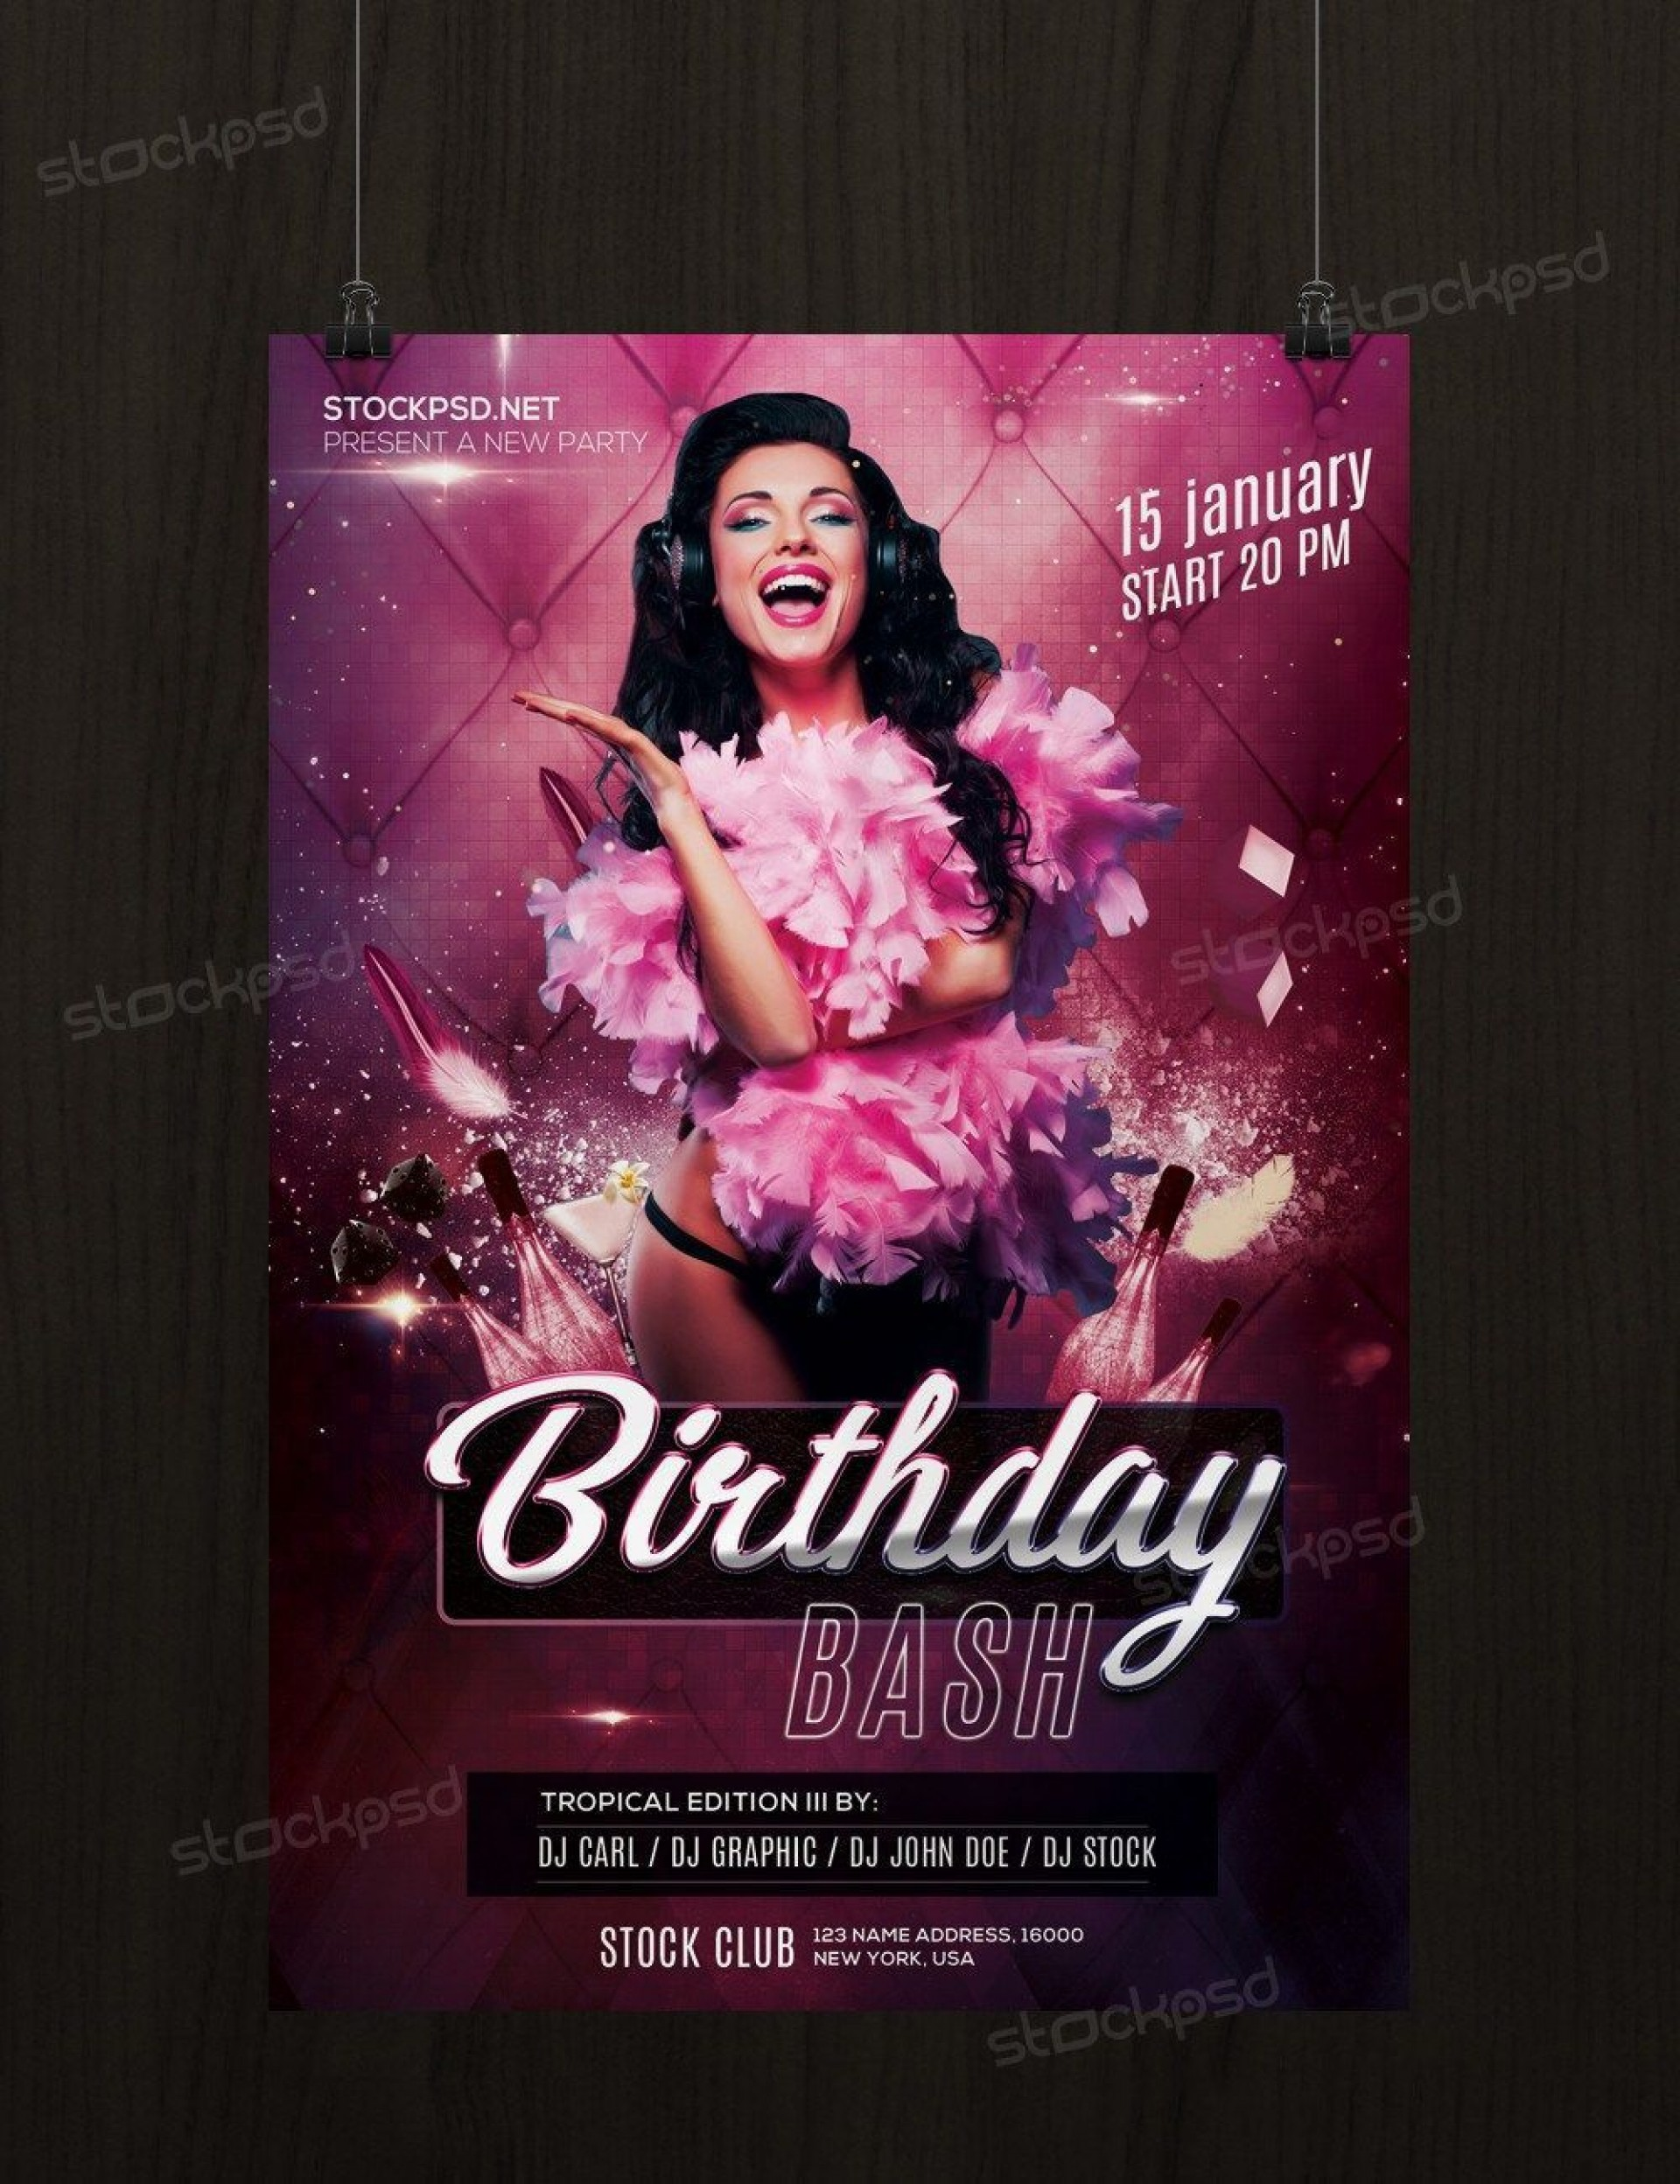 004 Wonderful Free Birthday Flyer Template Psd High Definition  Foam Party - Neon Glow Download Pool1920